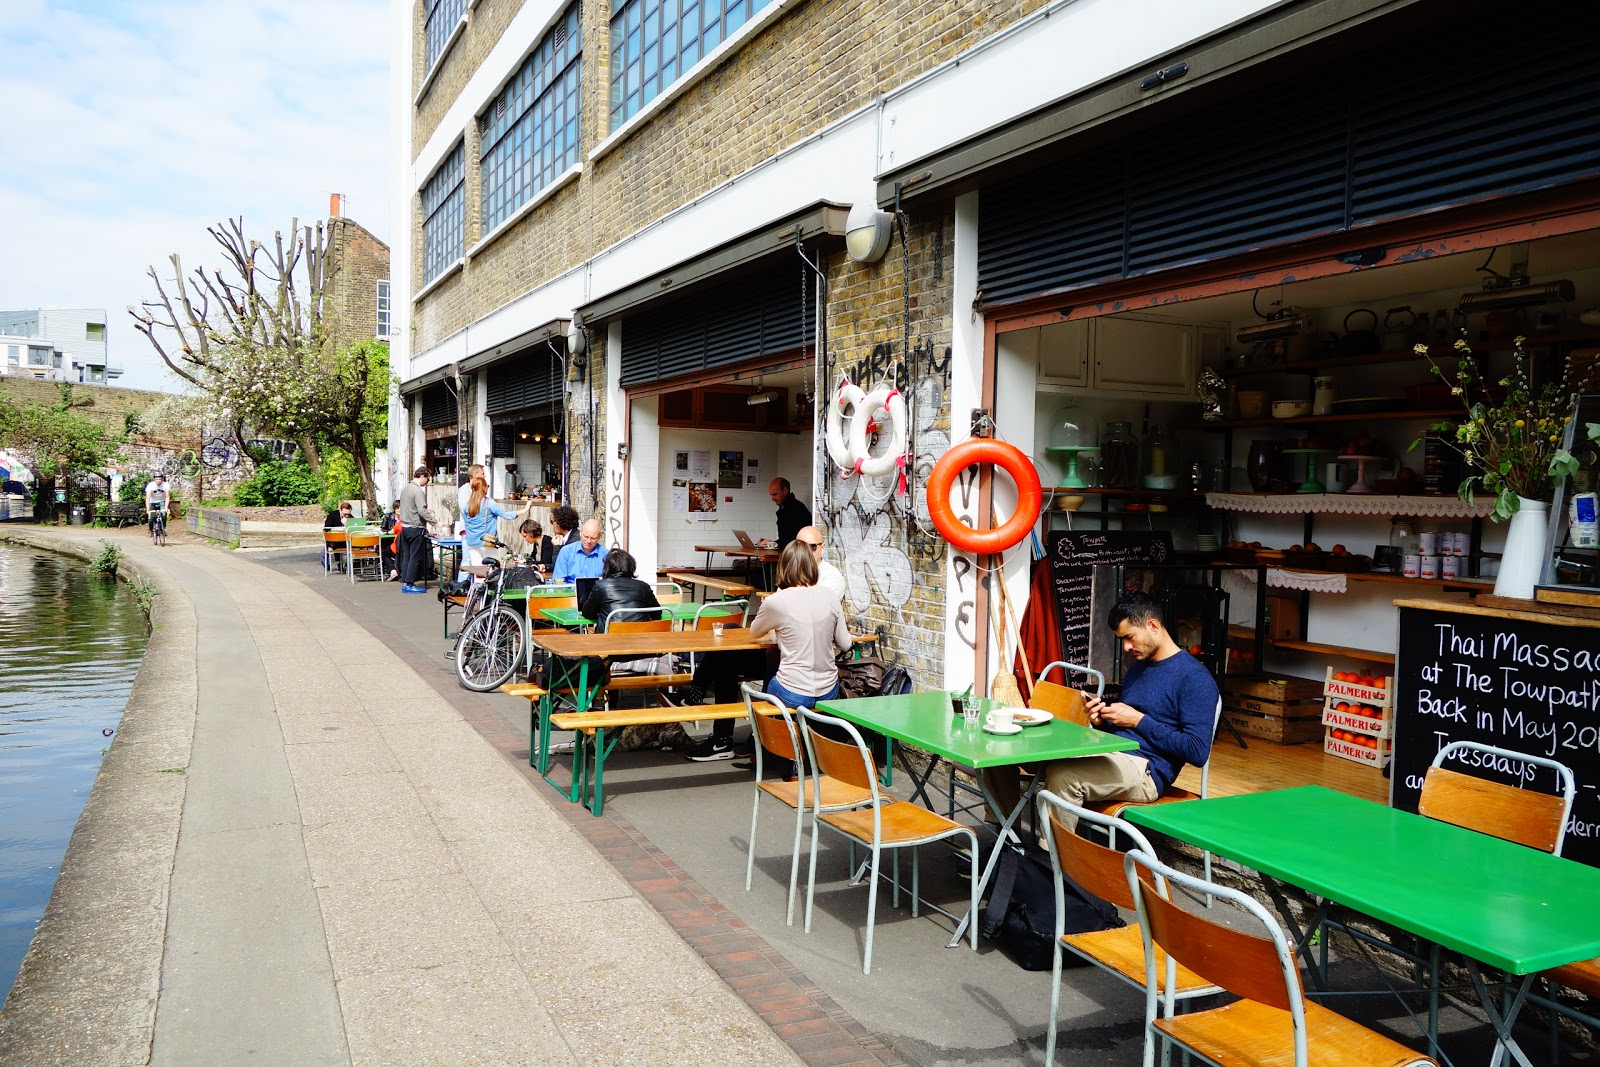 Towpath Café: A Work-Friendly Place in London